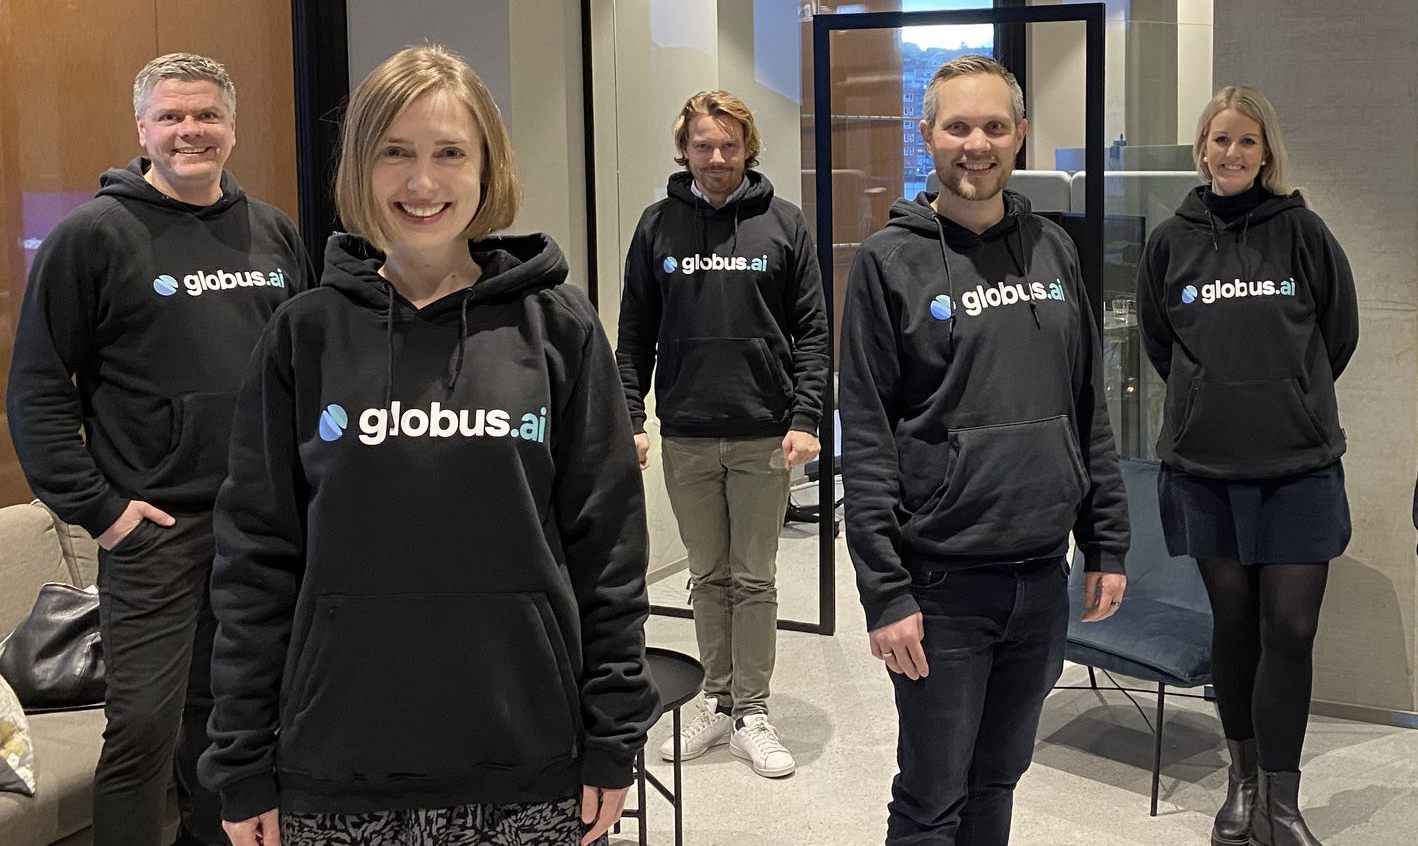 The Norwegian Minister of Trade & Industry visits the Globus AI Headquarters